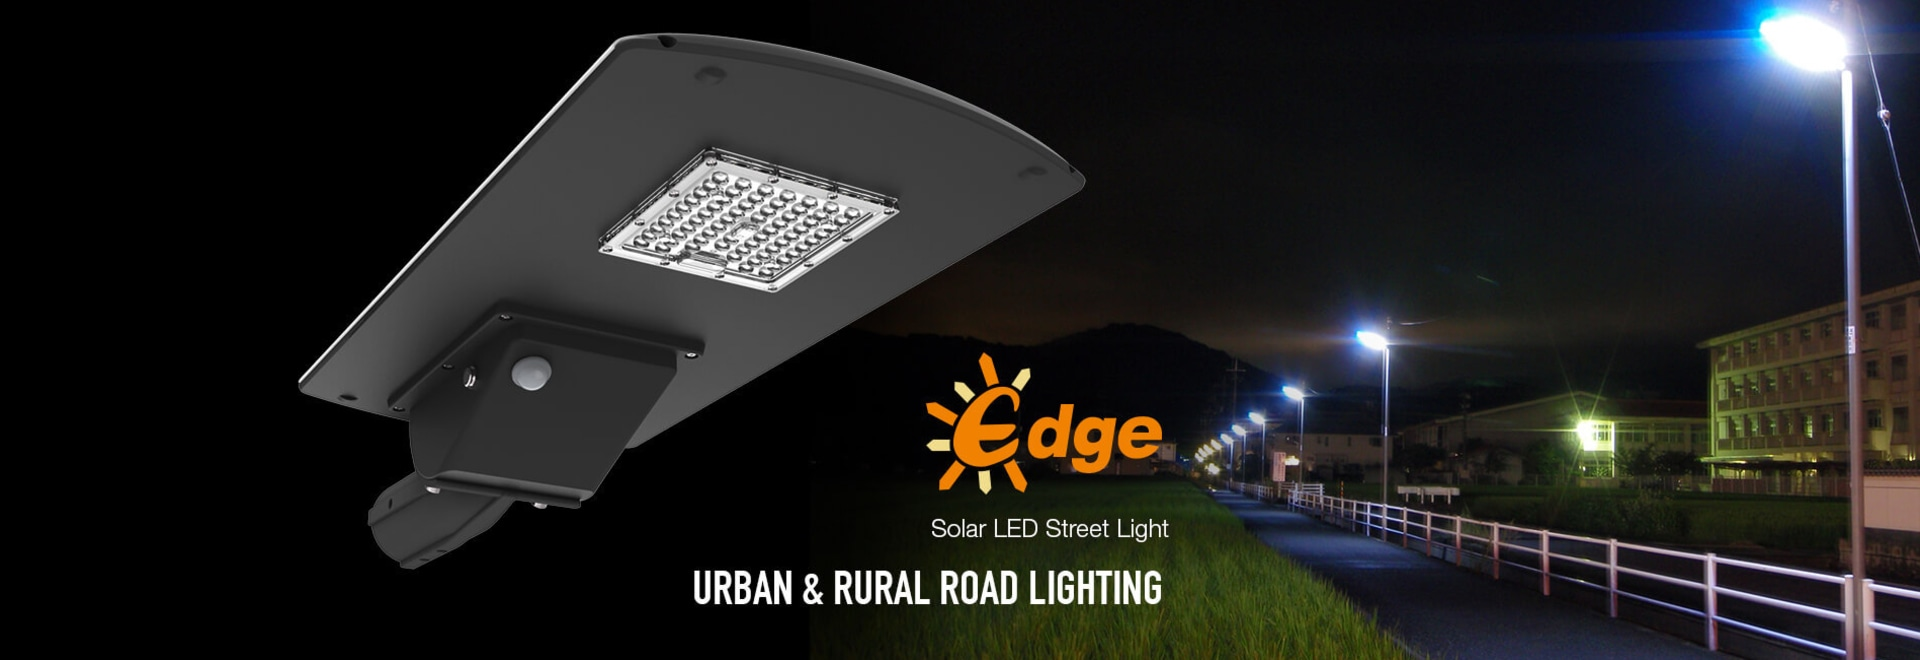 Edge solar LED street light